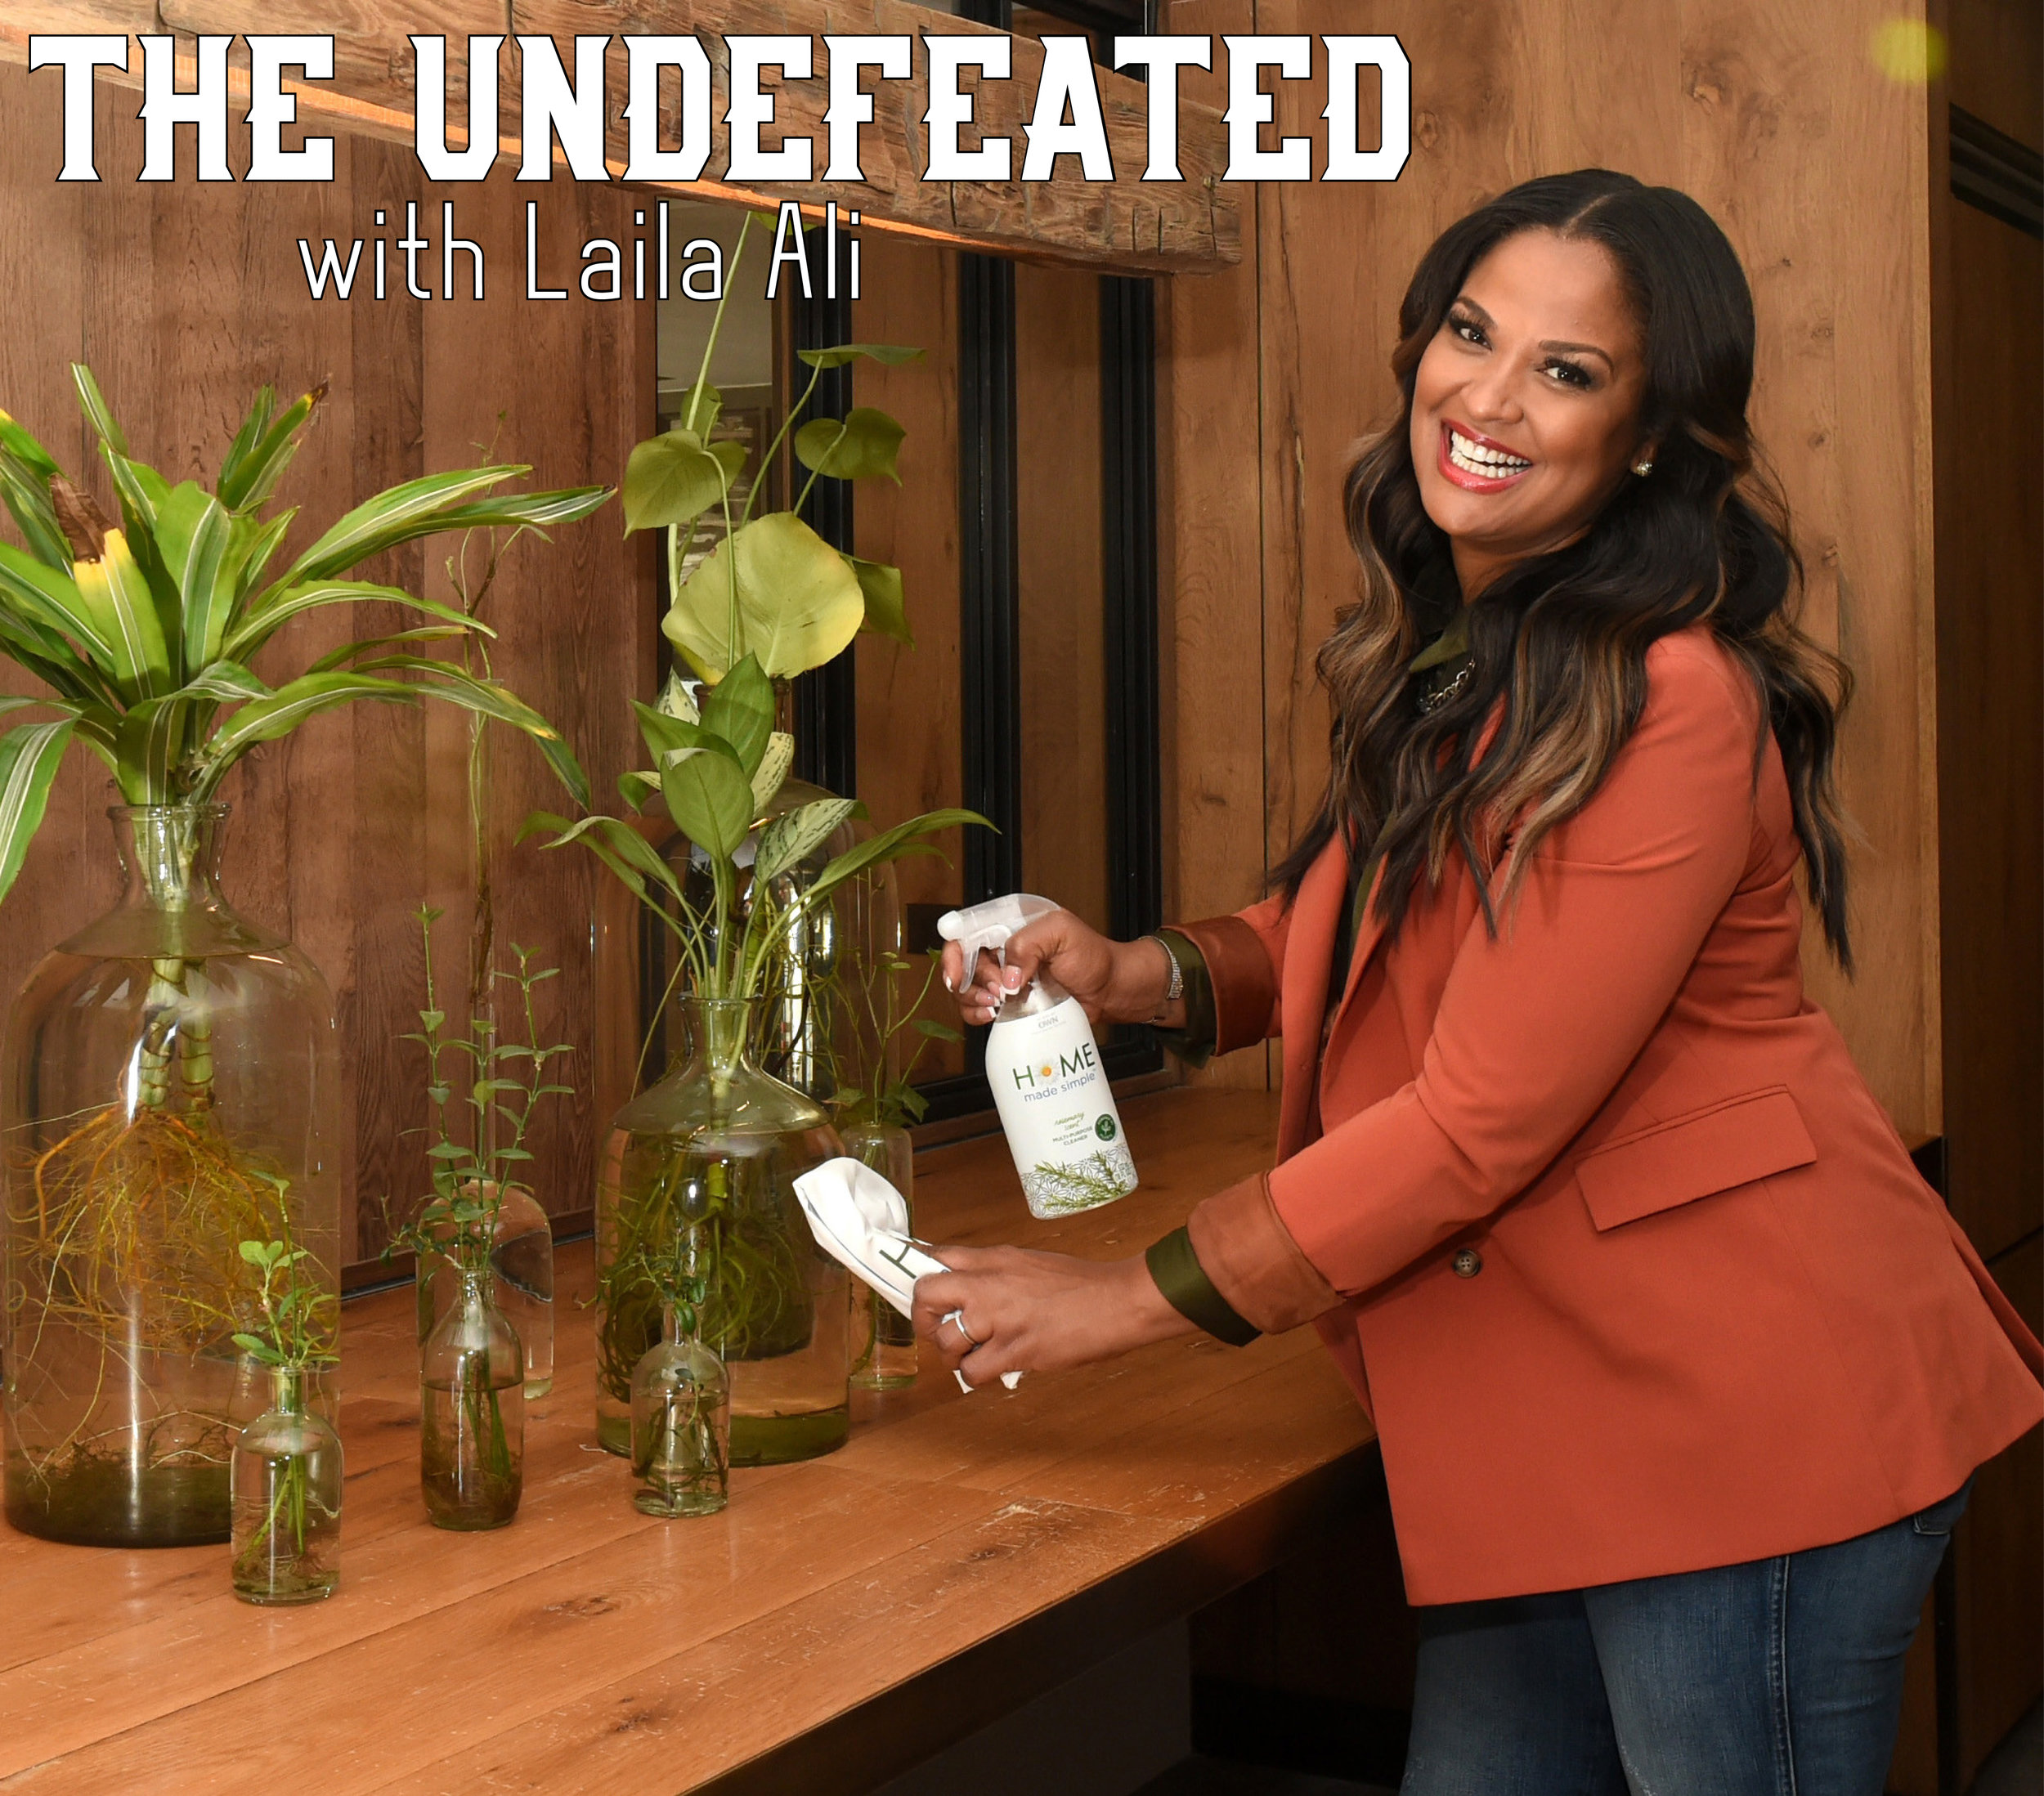 AM MAY THE UNDEFEATED WITH LAILA ALI-1.jpg